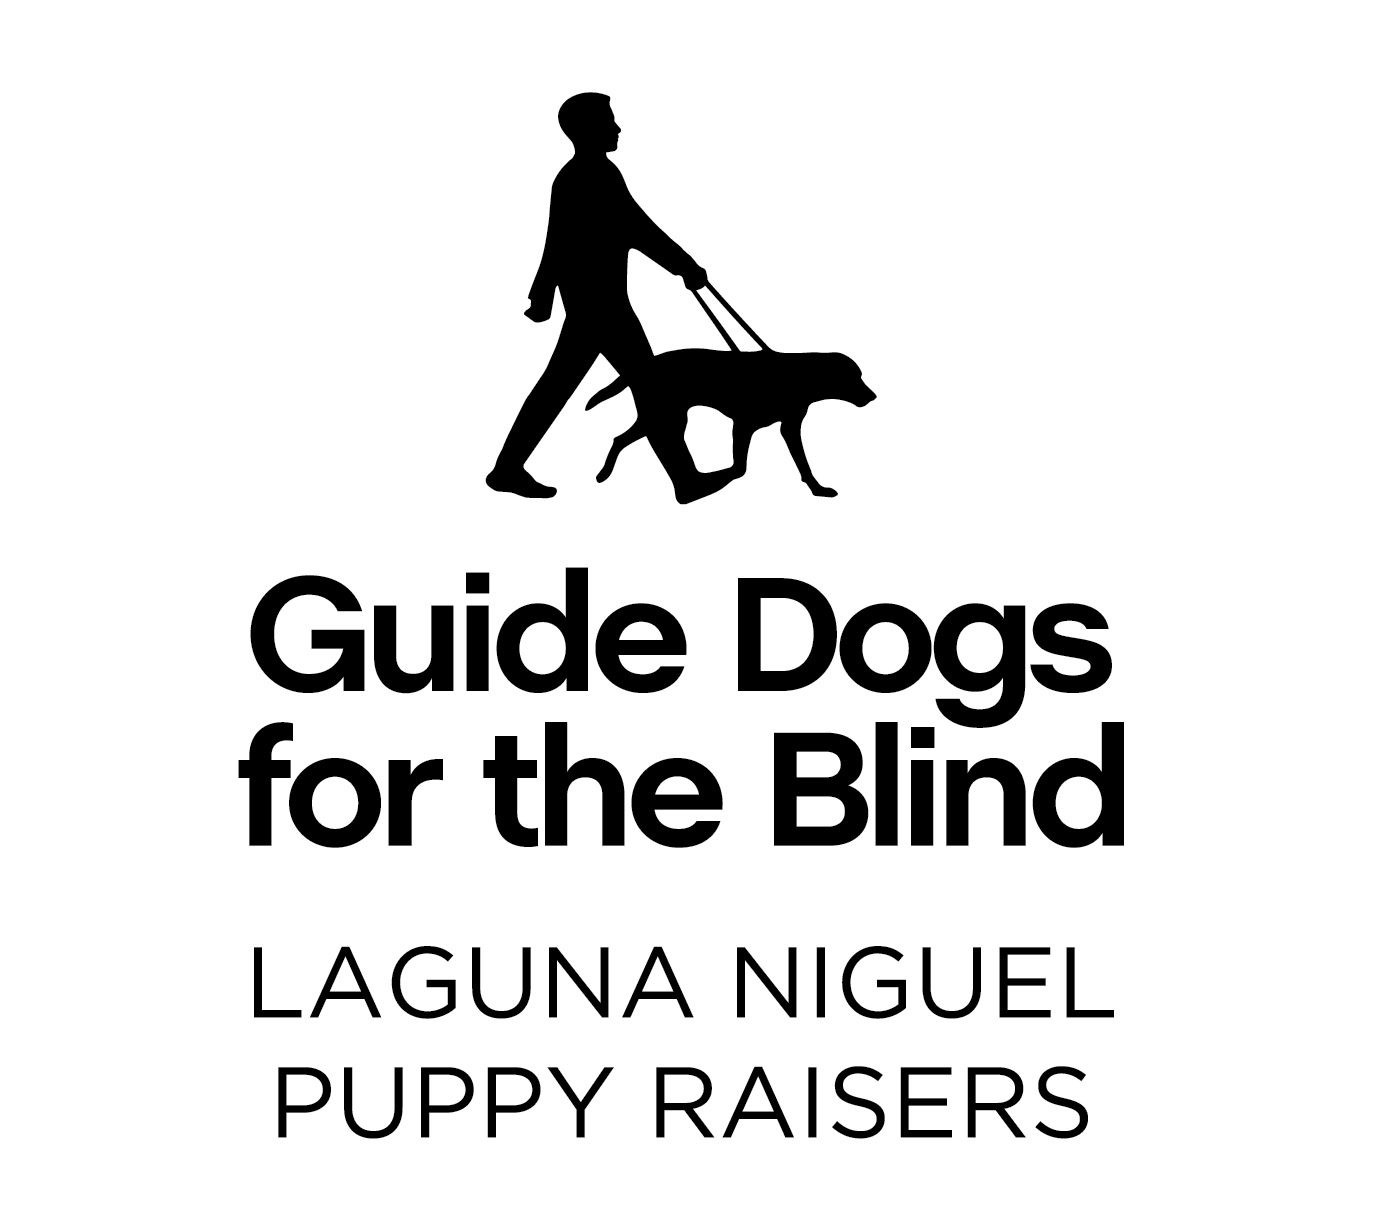 Guide Dogs for the Blind - Laguna Niguel Puppy Raisers